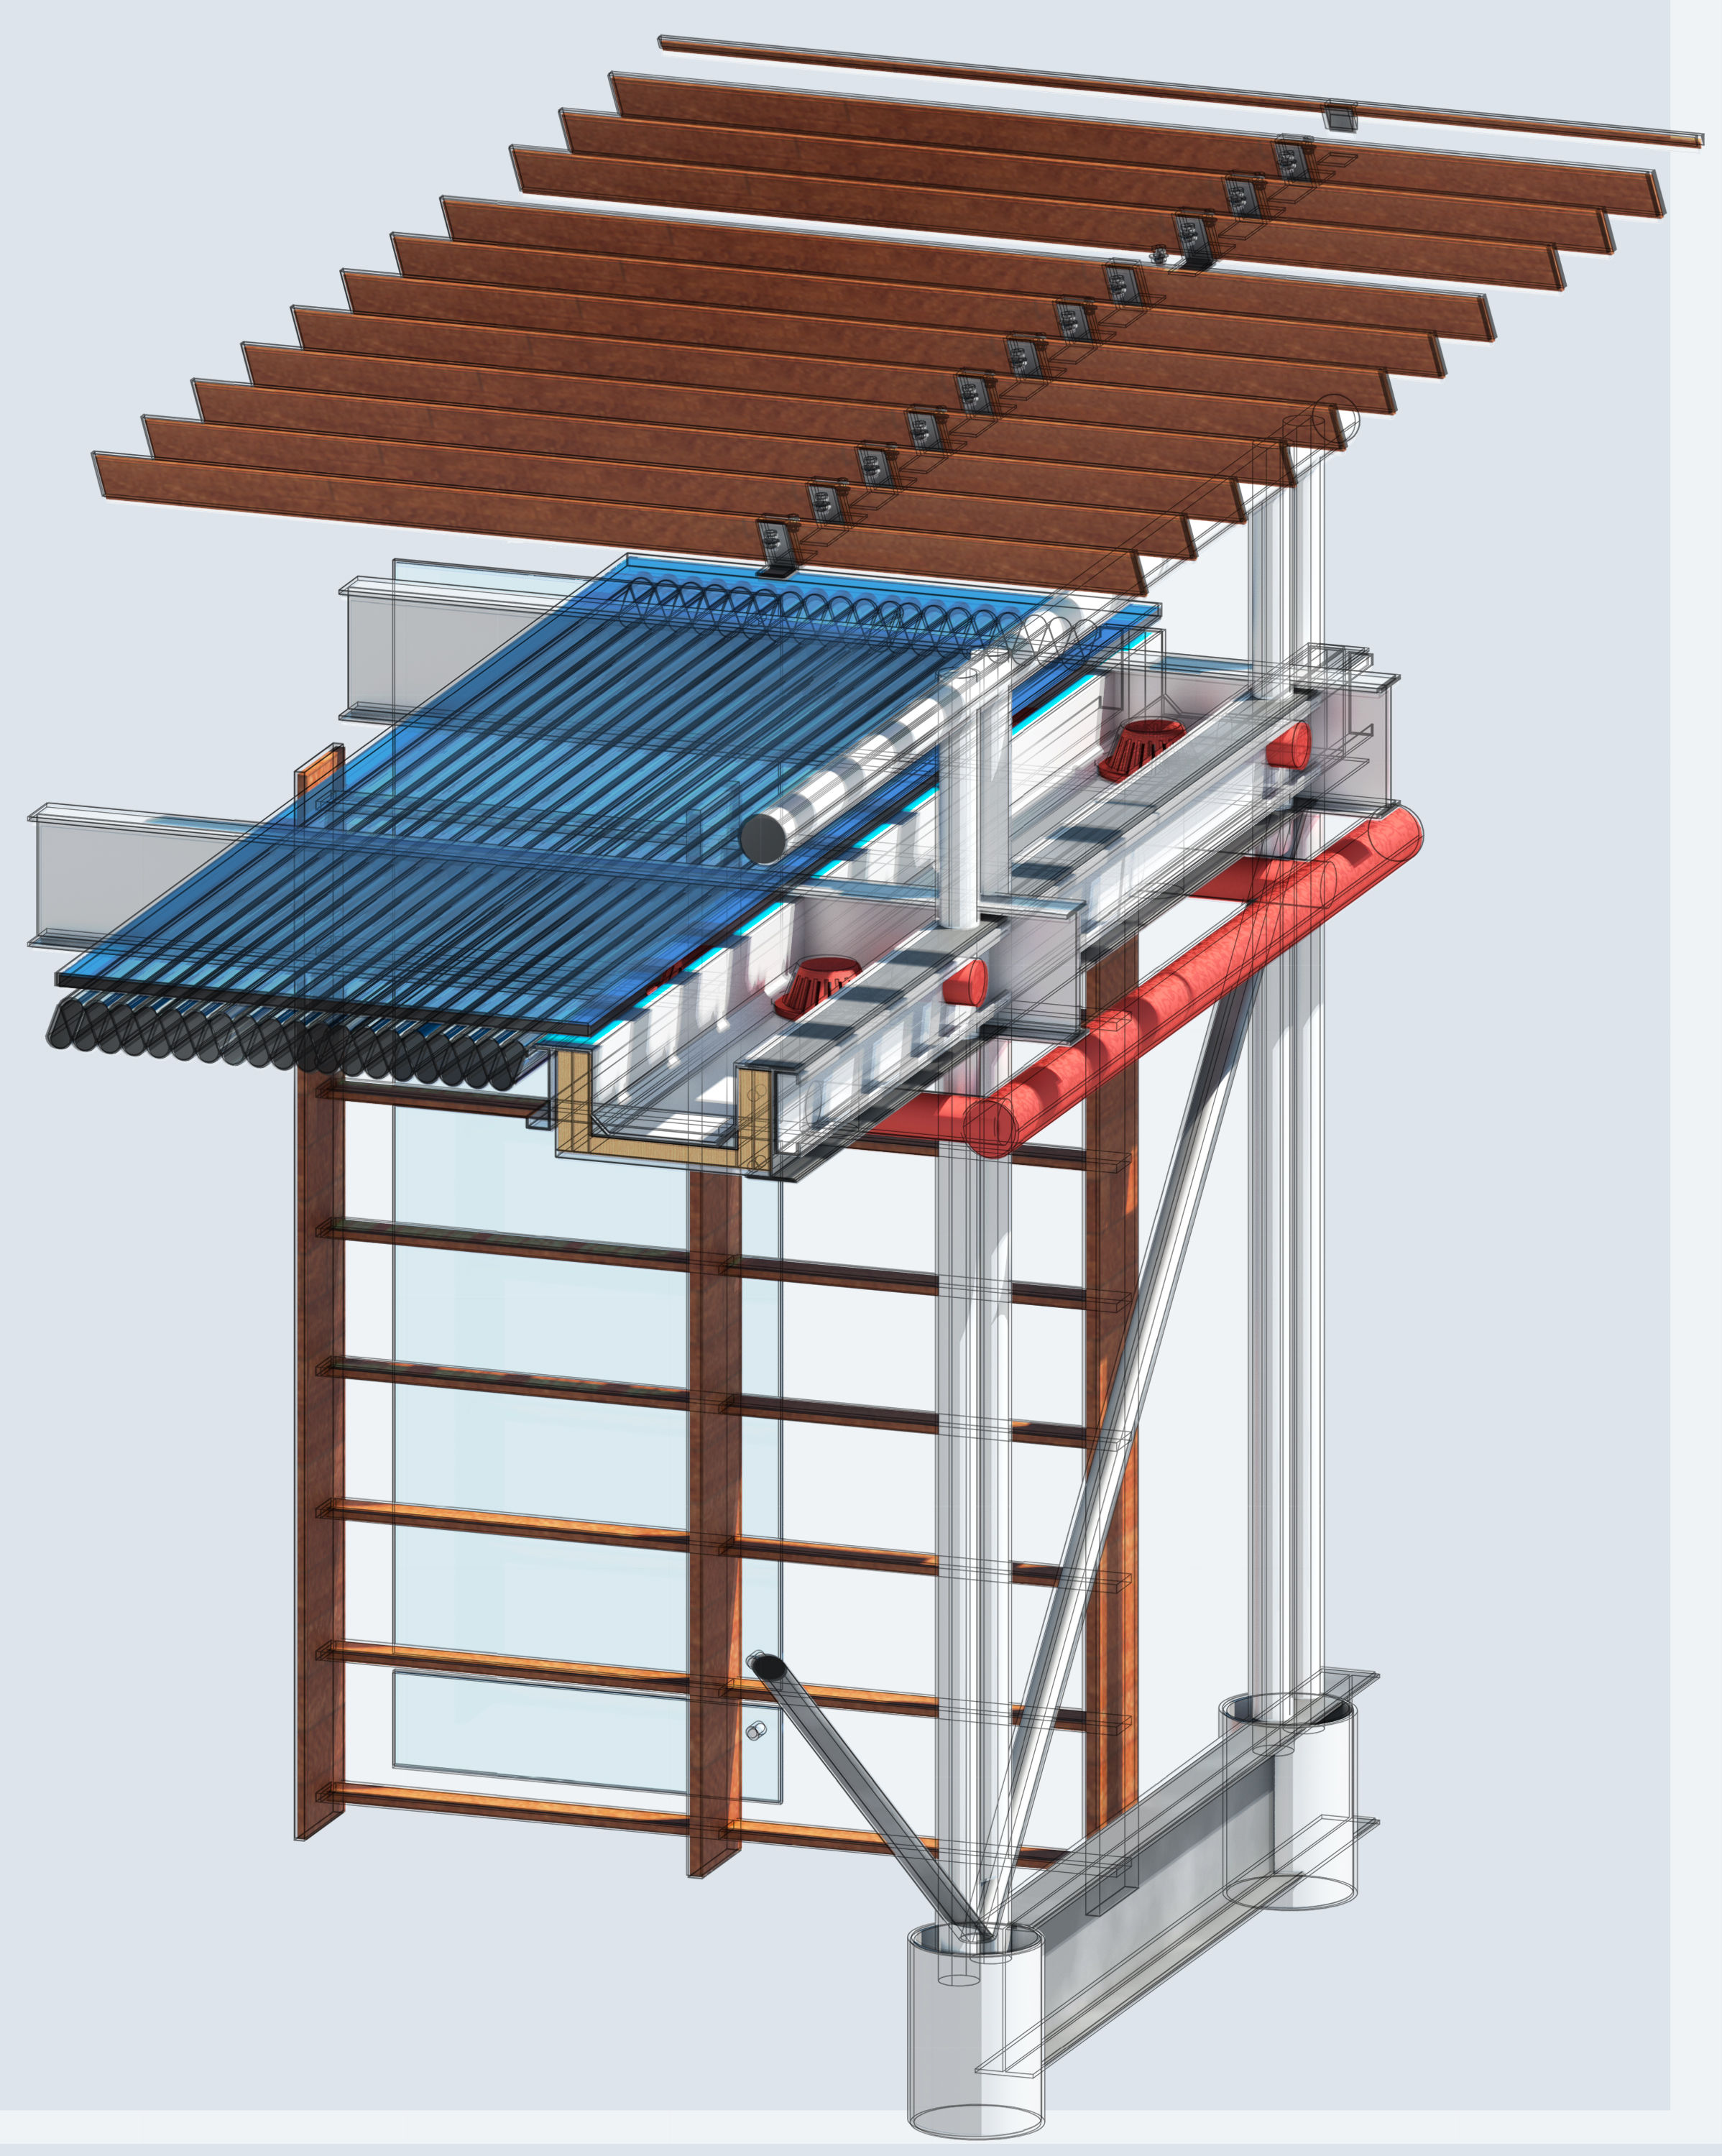 Roof-3500-3500